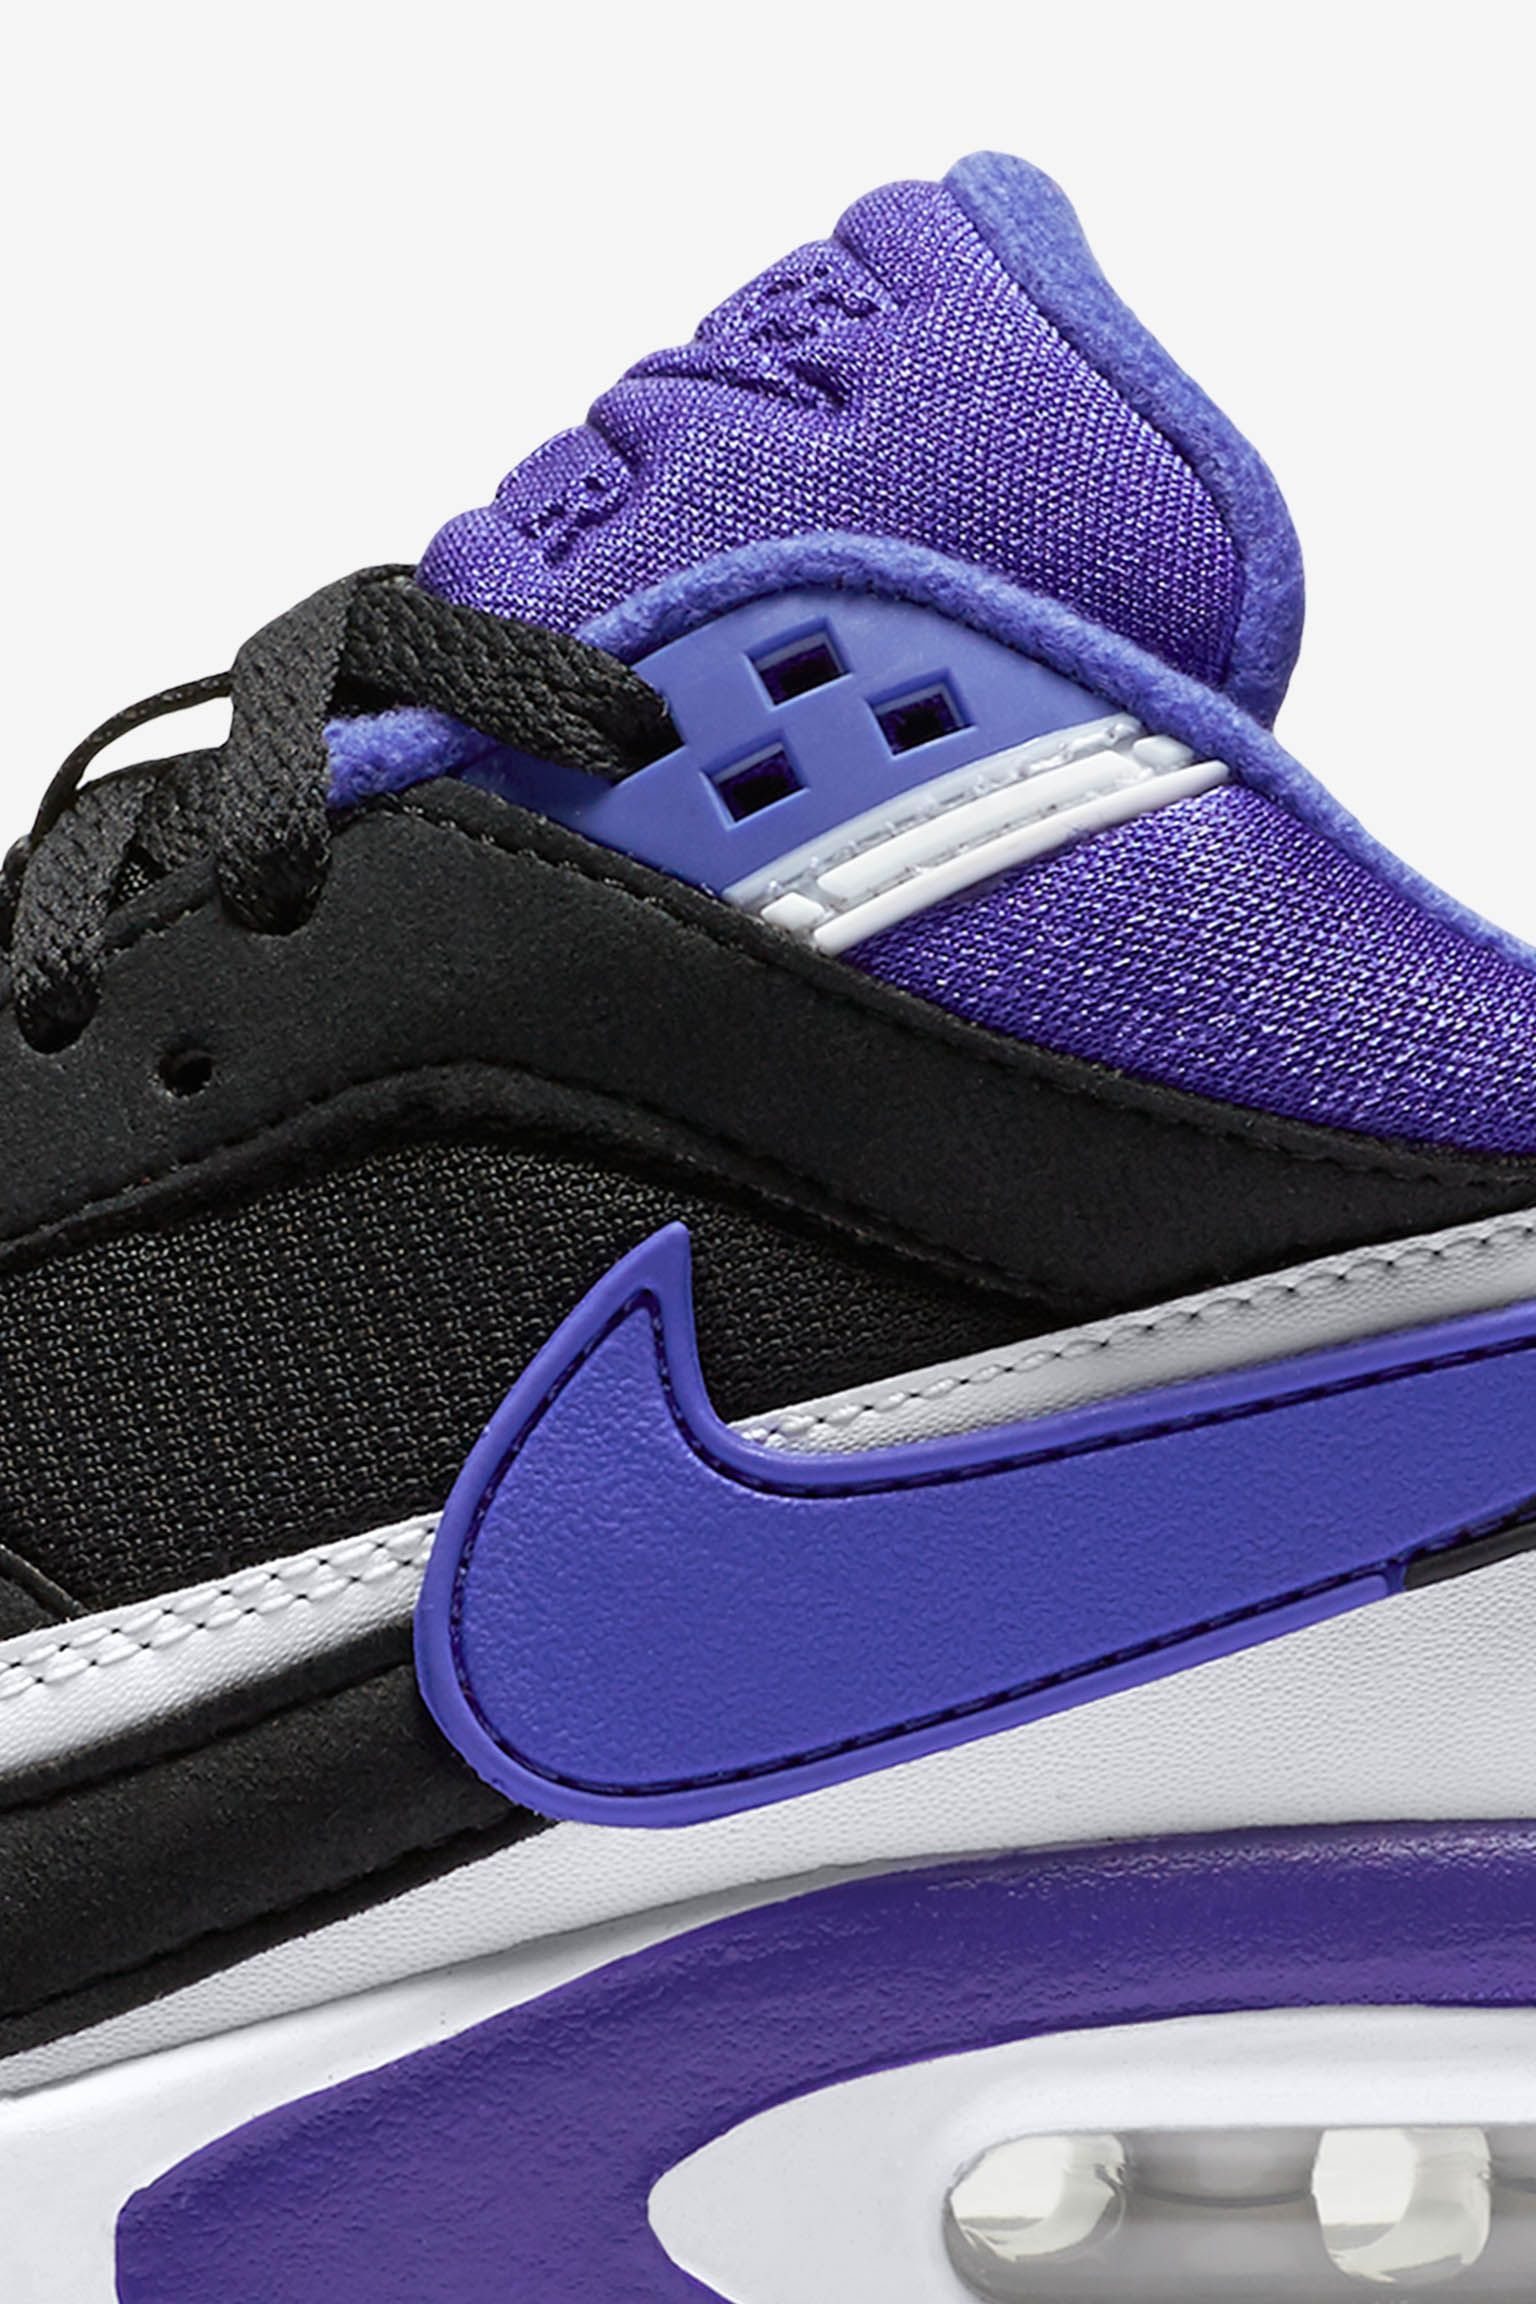 Women's Nike Air Max BW 'Persian Violet' Release Date